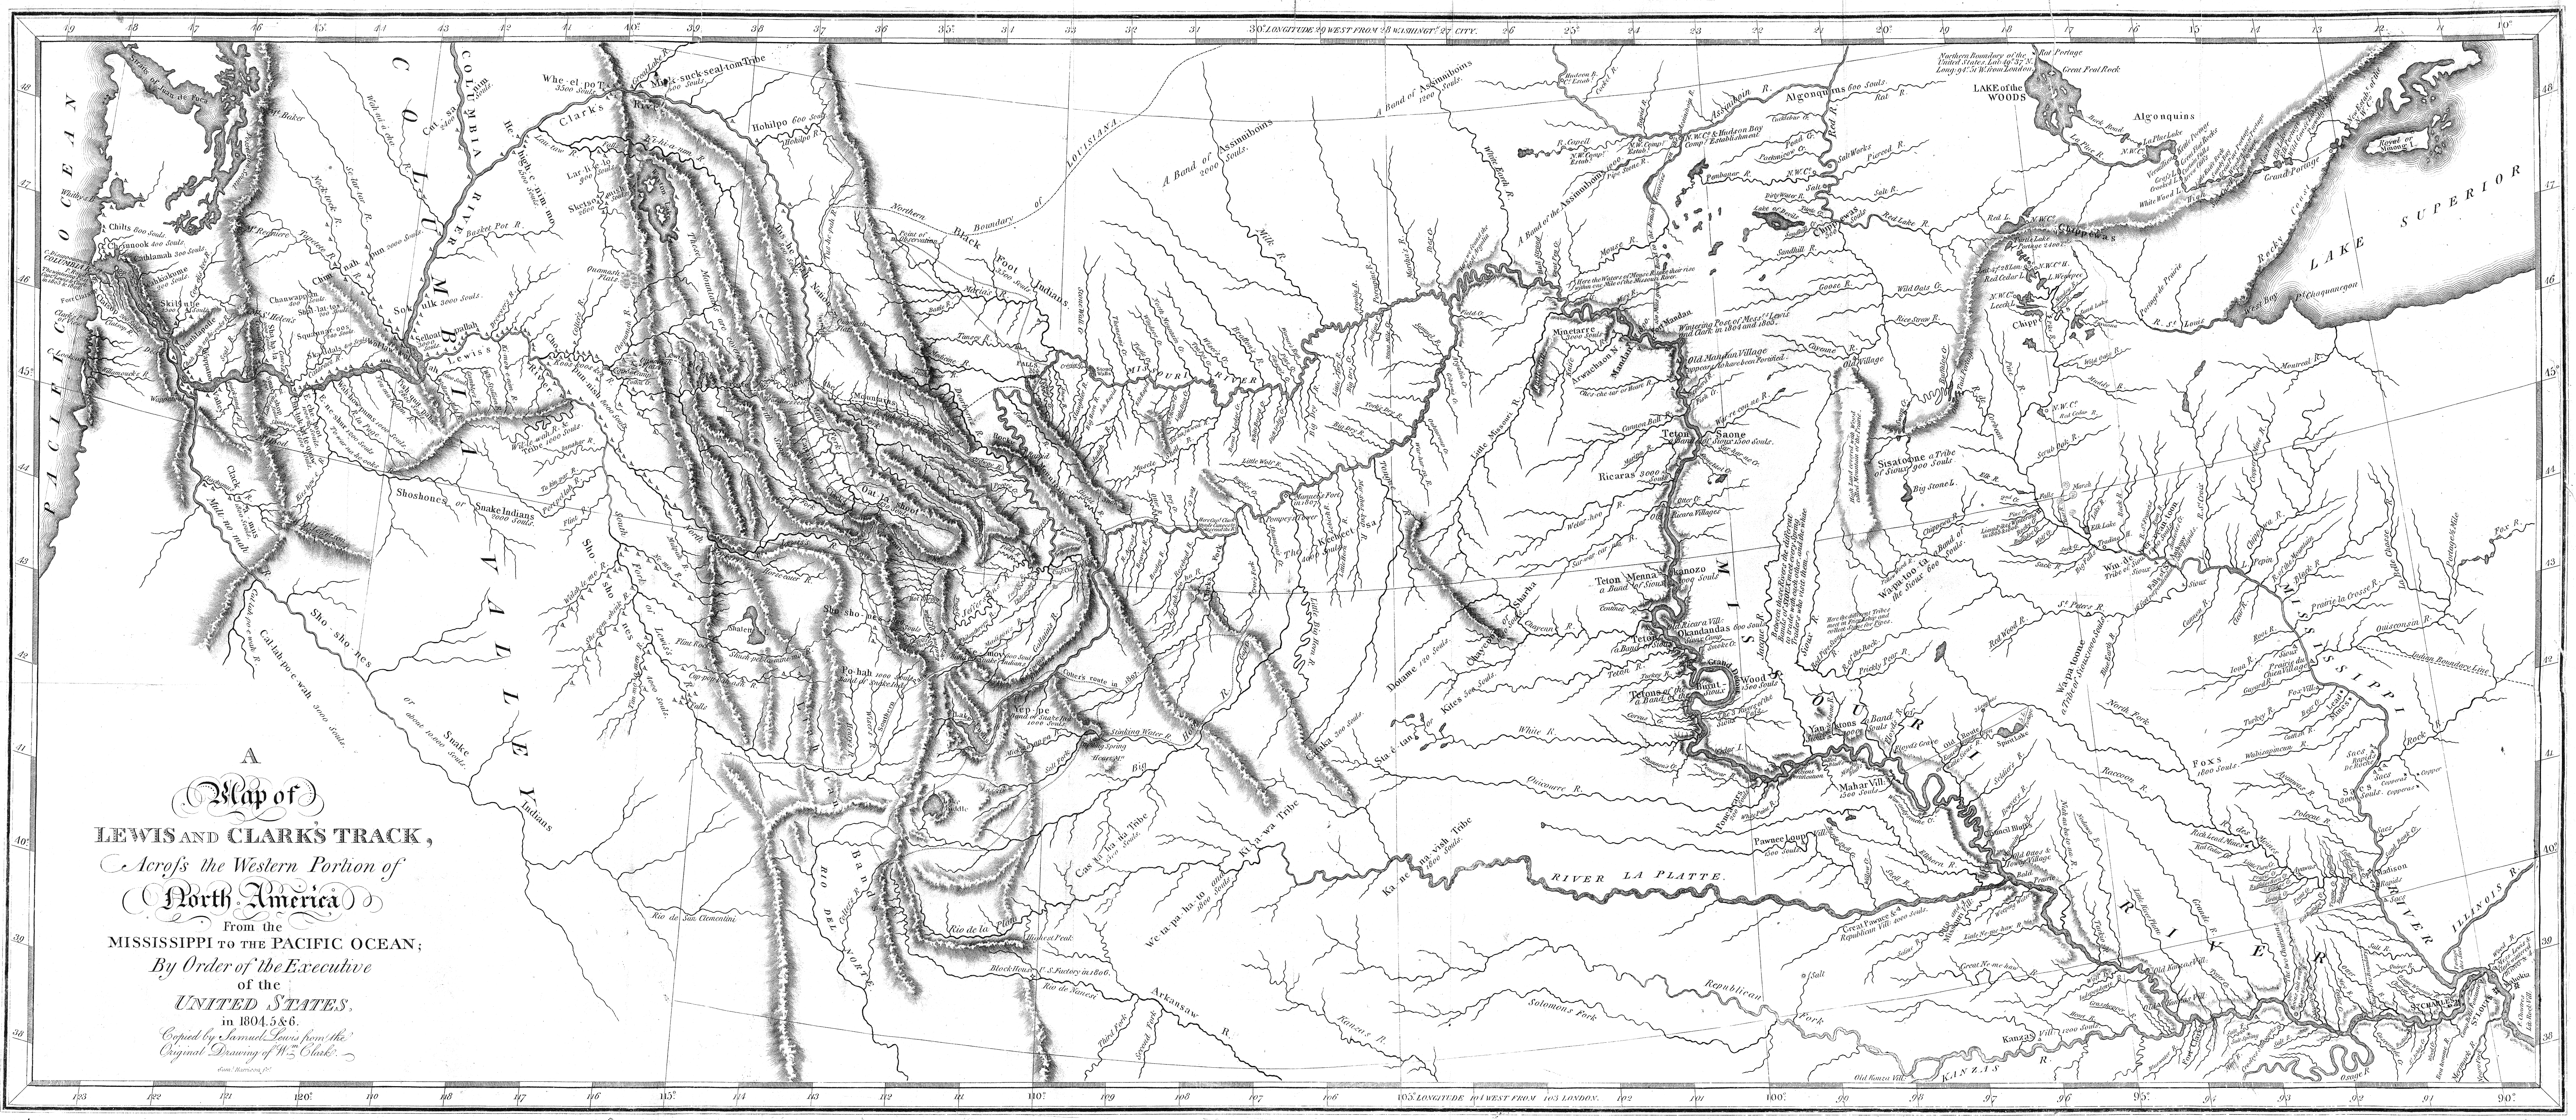 FileMap Of Lewis And Clarks Track Across The Western Portion Of - Us map 1814